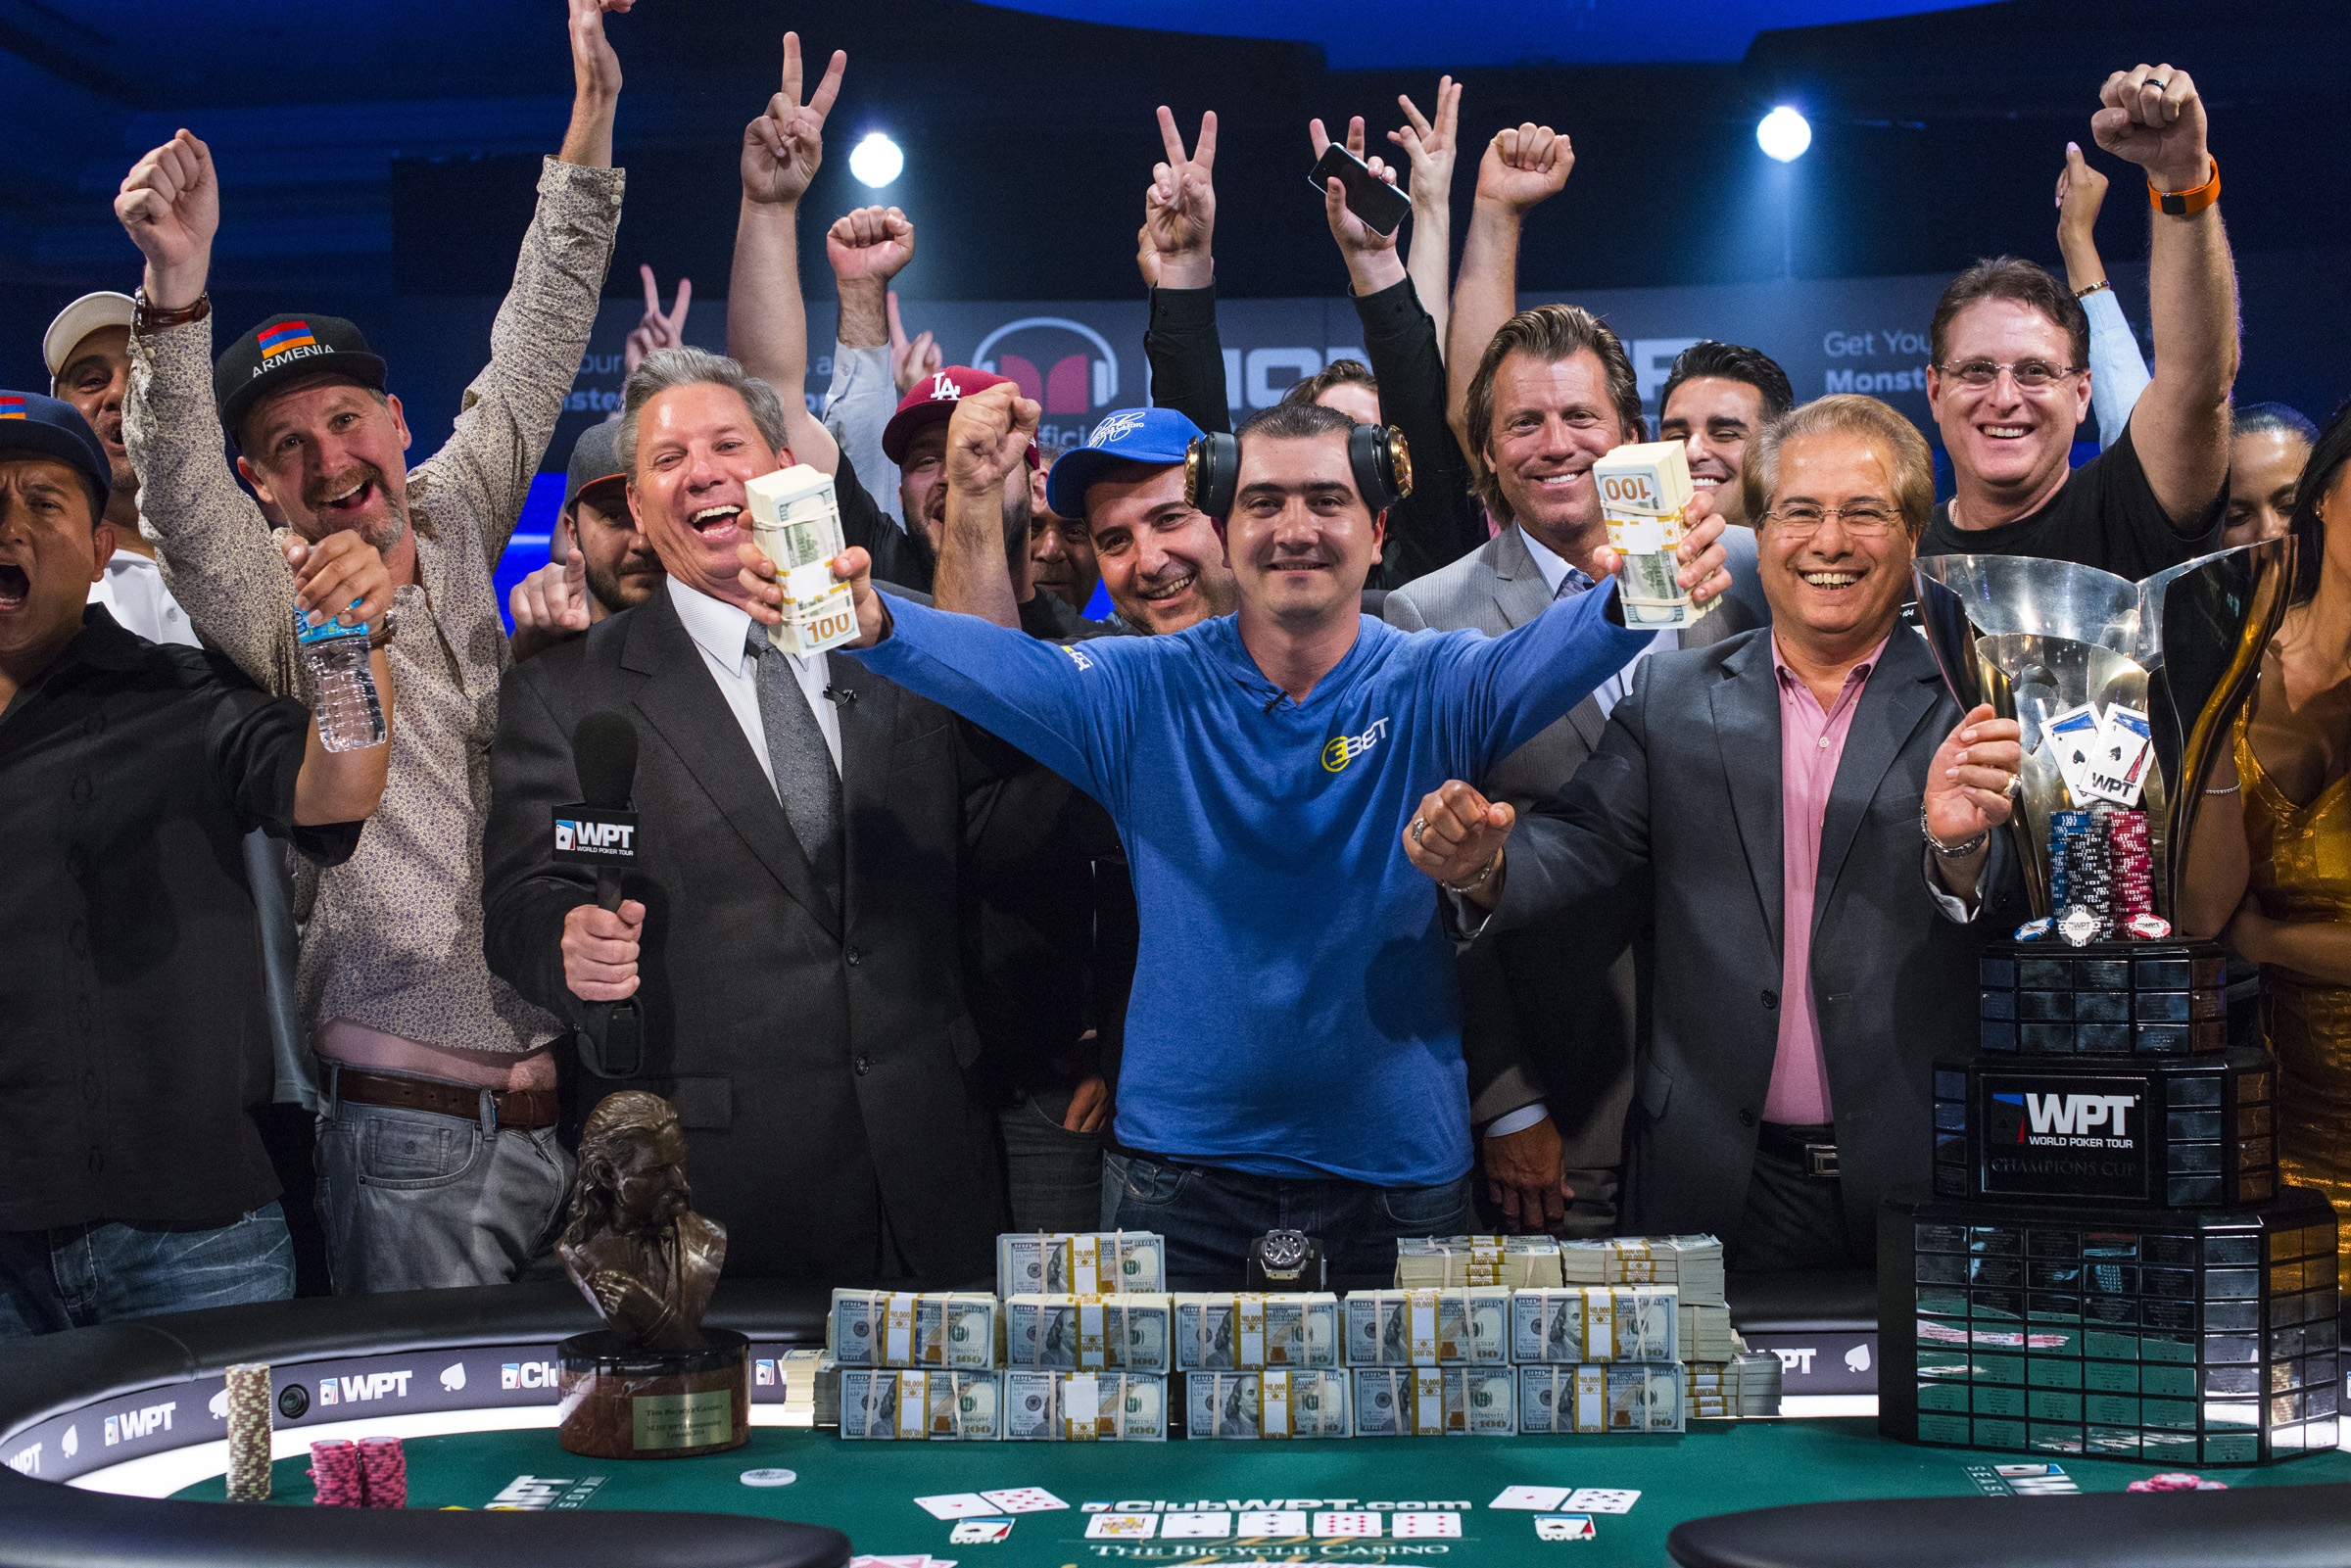 Wpt legends of poker results usa online poker free money